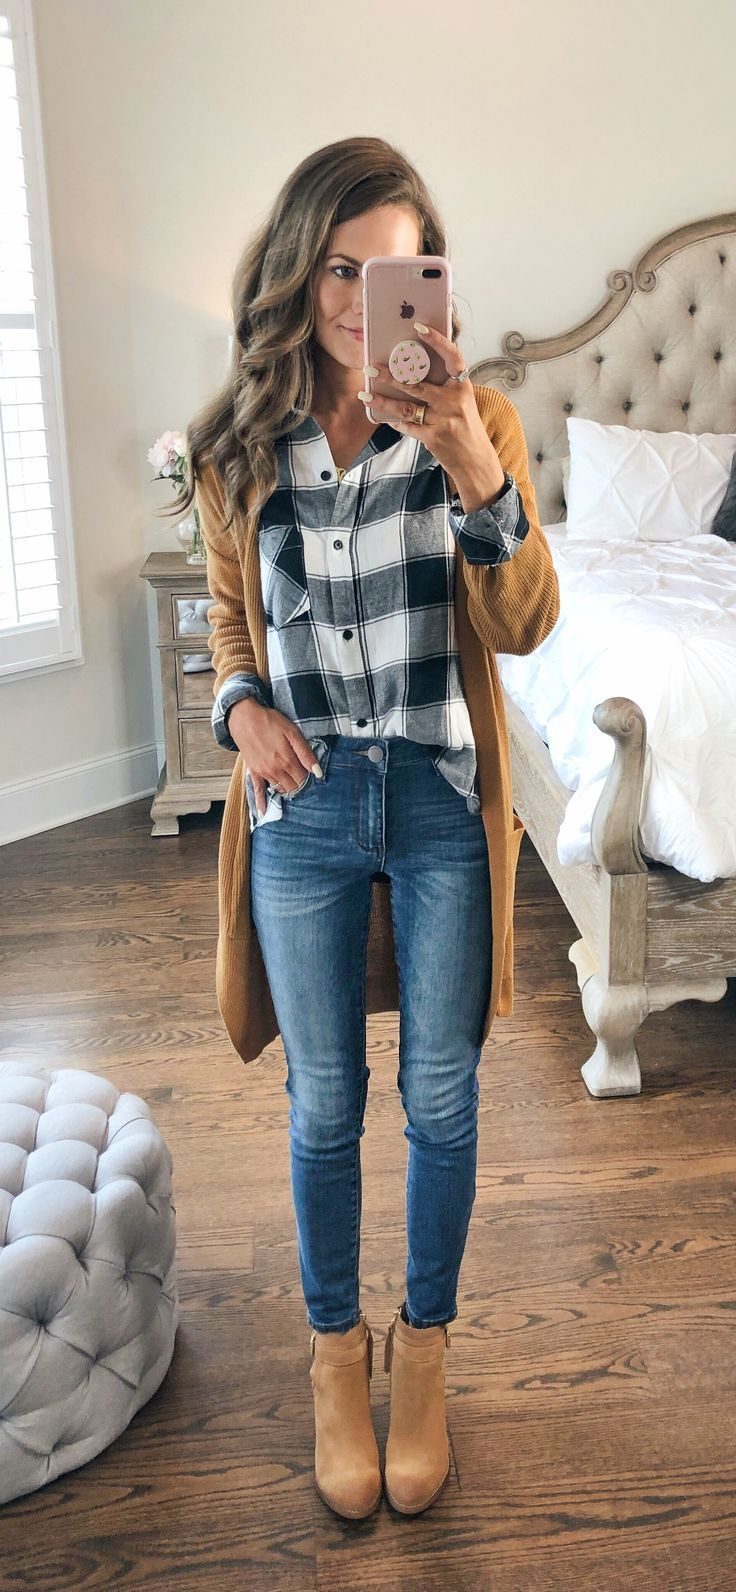 Photo of kuscheliges Herbstoutfit aus kariertem Button-Down mit kamelfarbener langer Strickjacke und Jeans #casualstylefall